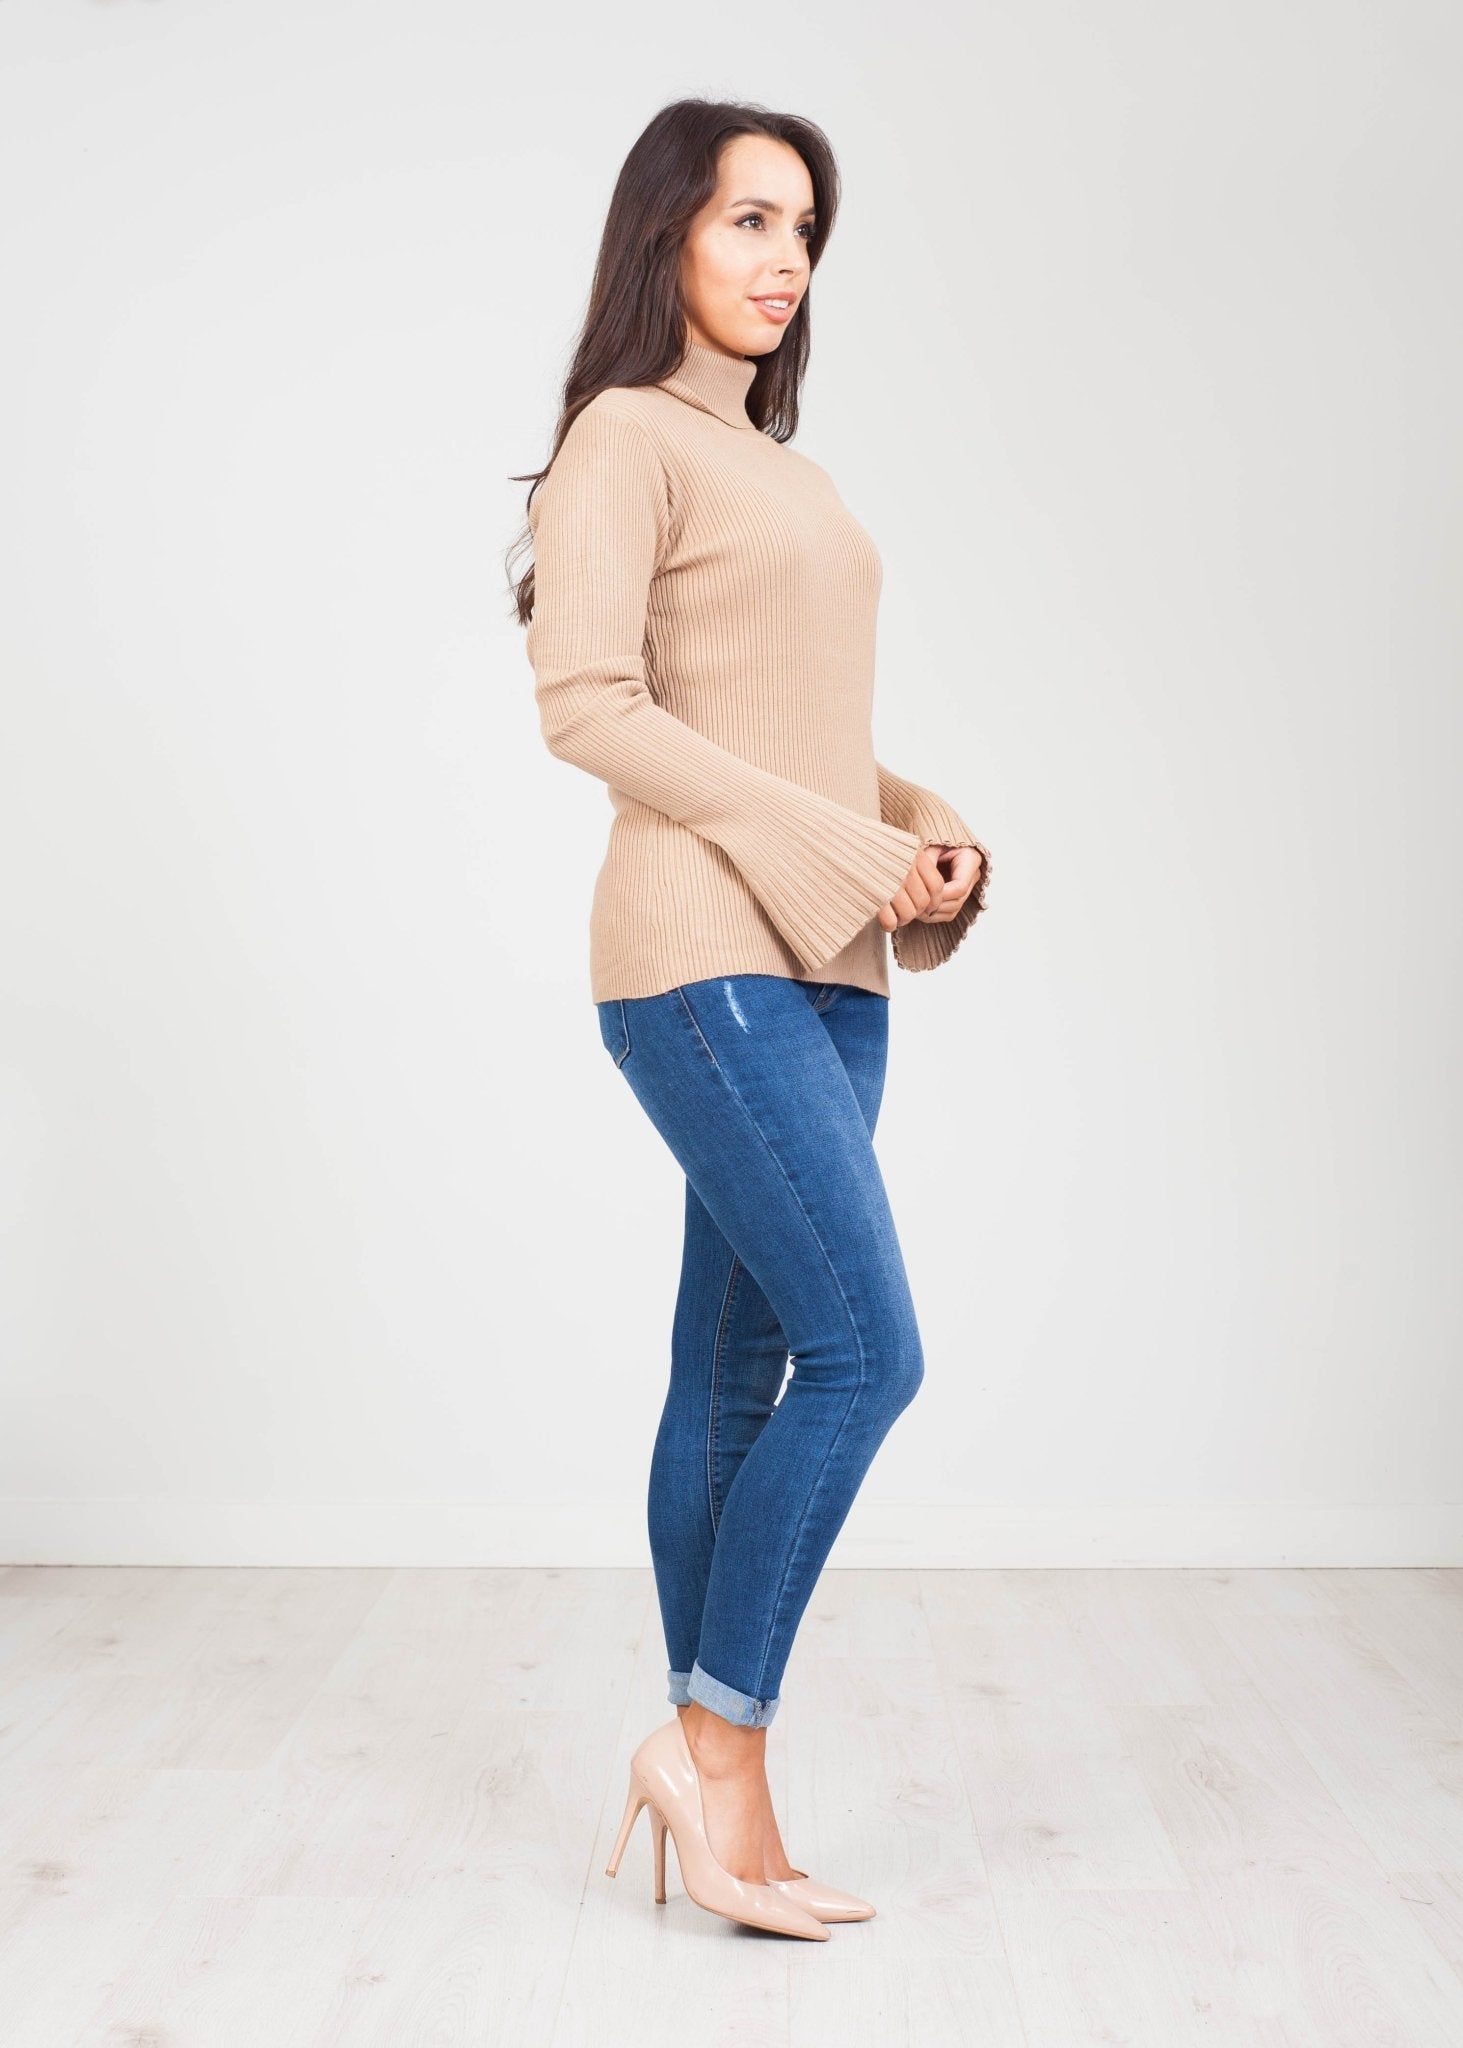 Emilia Polo Neck with Bell Cuff in Beige - The Walk in Wardrobe